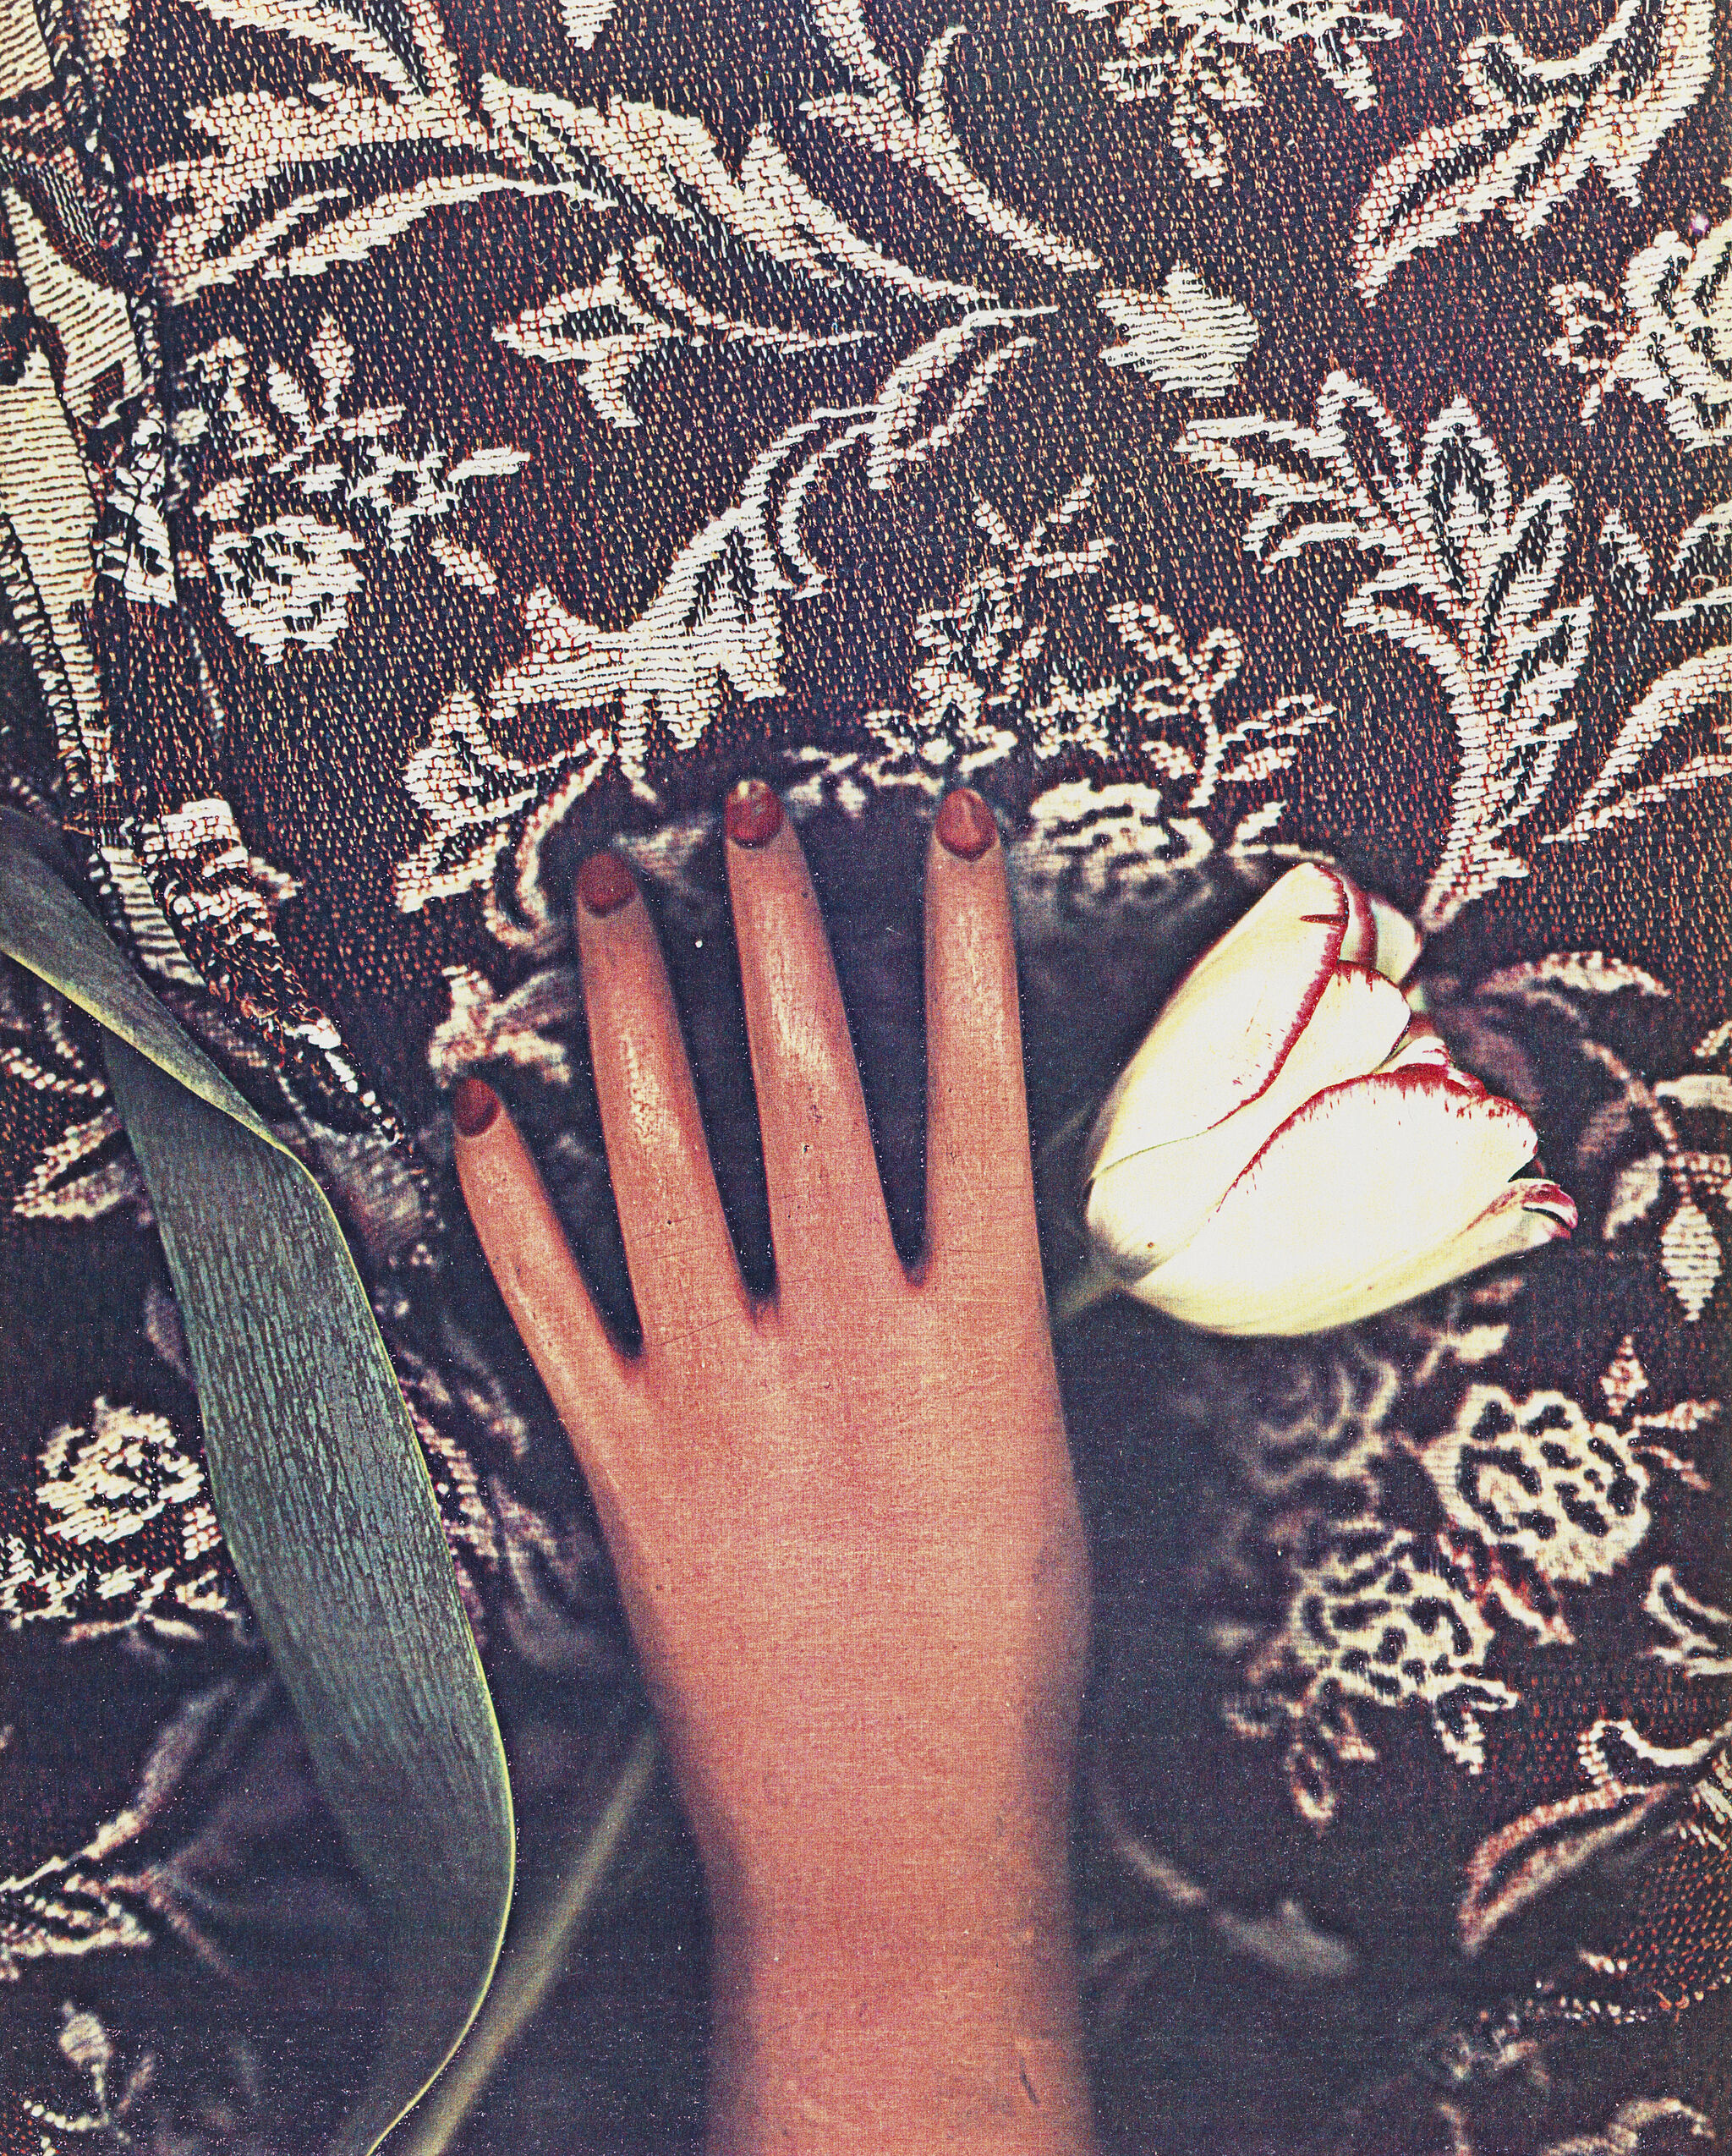 Photocopy collage of a woman's hand holding a flower.